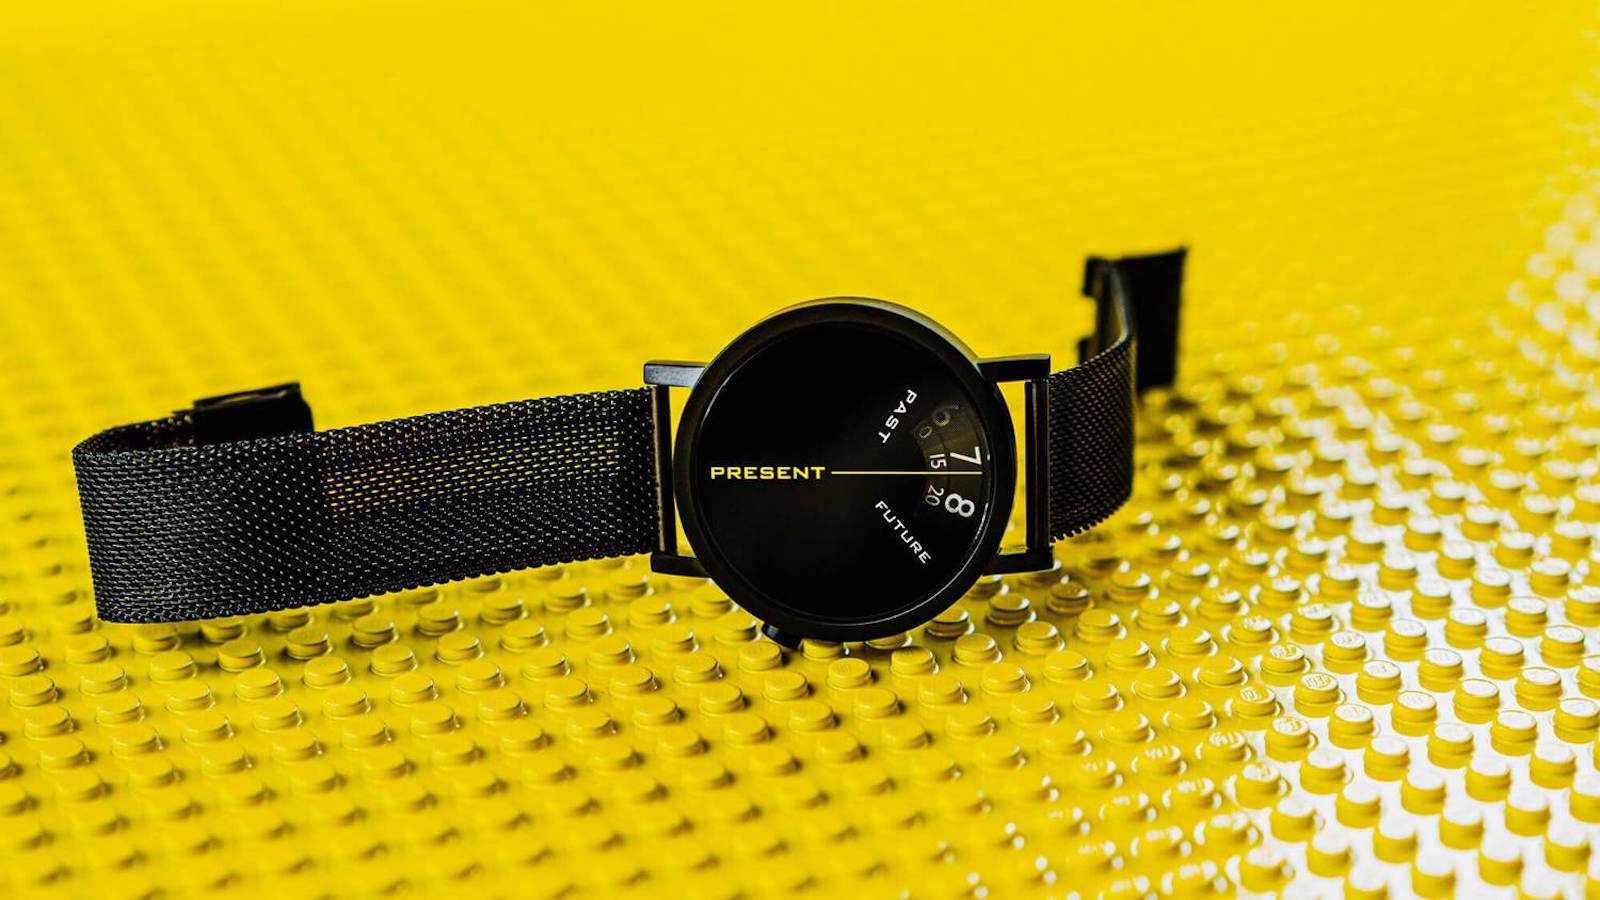 Projects Watches Past, Present, and Future Black 40 mm watch